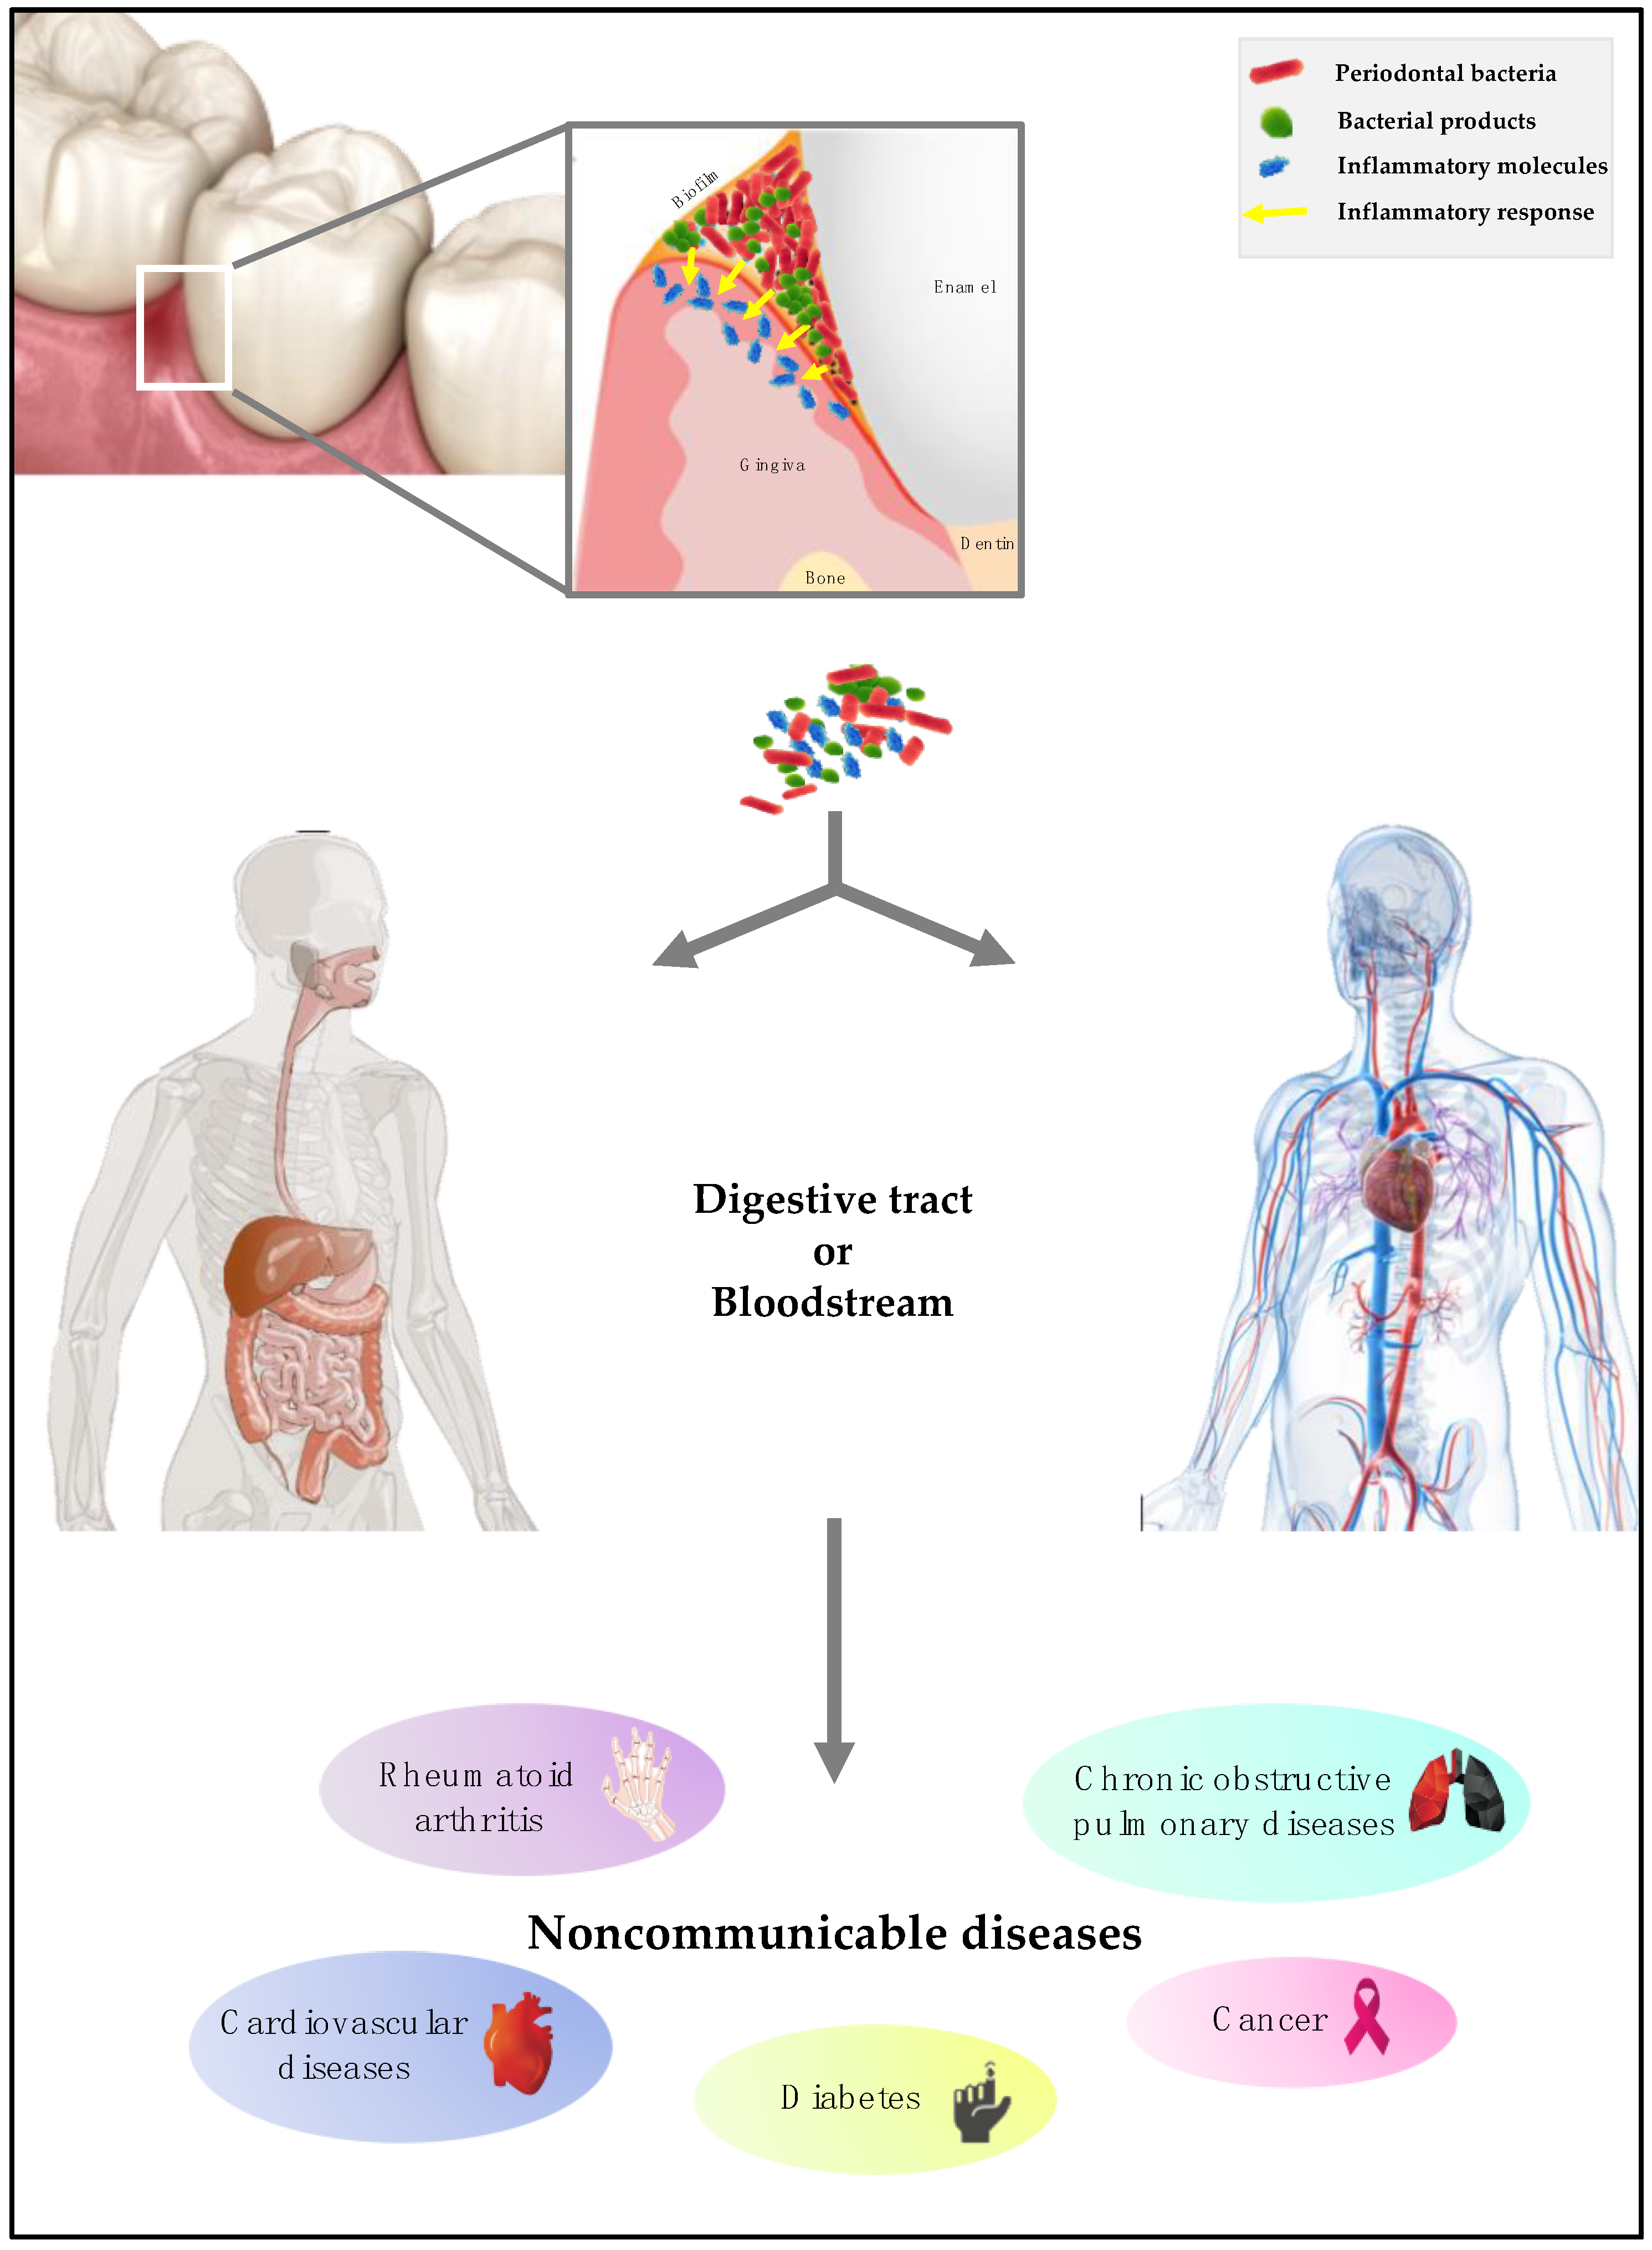 Microorganisms Free Full Text Periodontal Pathogens As Risk Factors Of Cardiovascular Diseases Diabetes Rheumatoid Arthritis Cancer And Chronic Obstructive Pulmonary Disease Is There Cause For Consideration Html